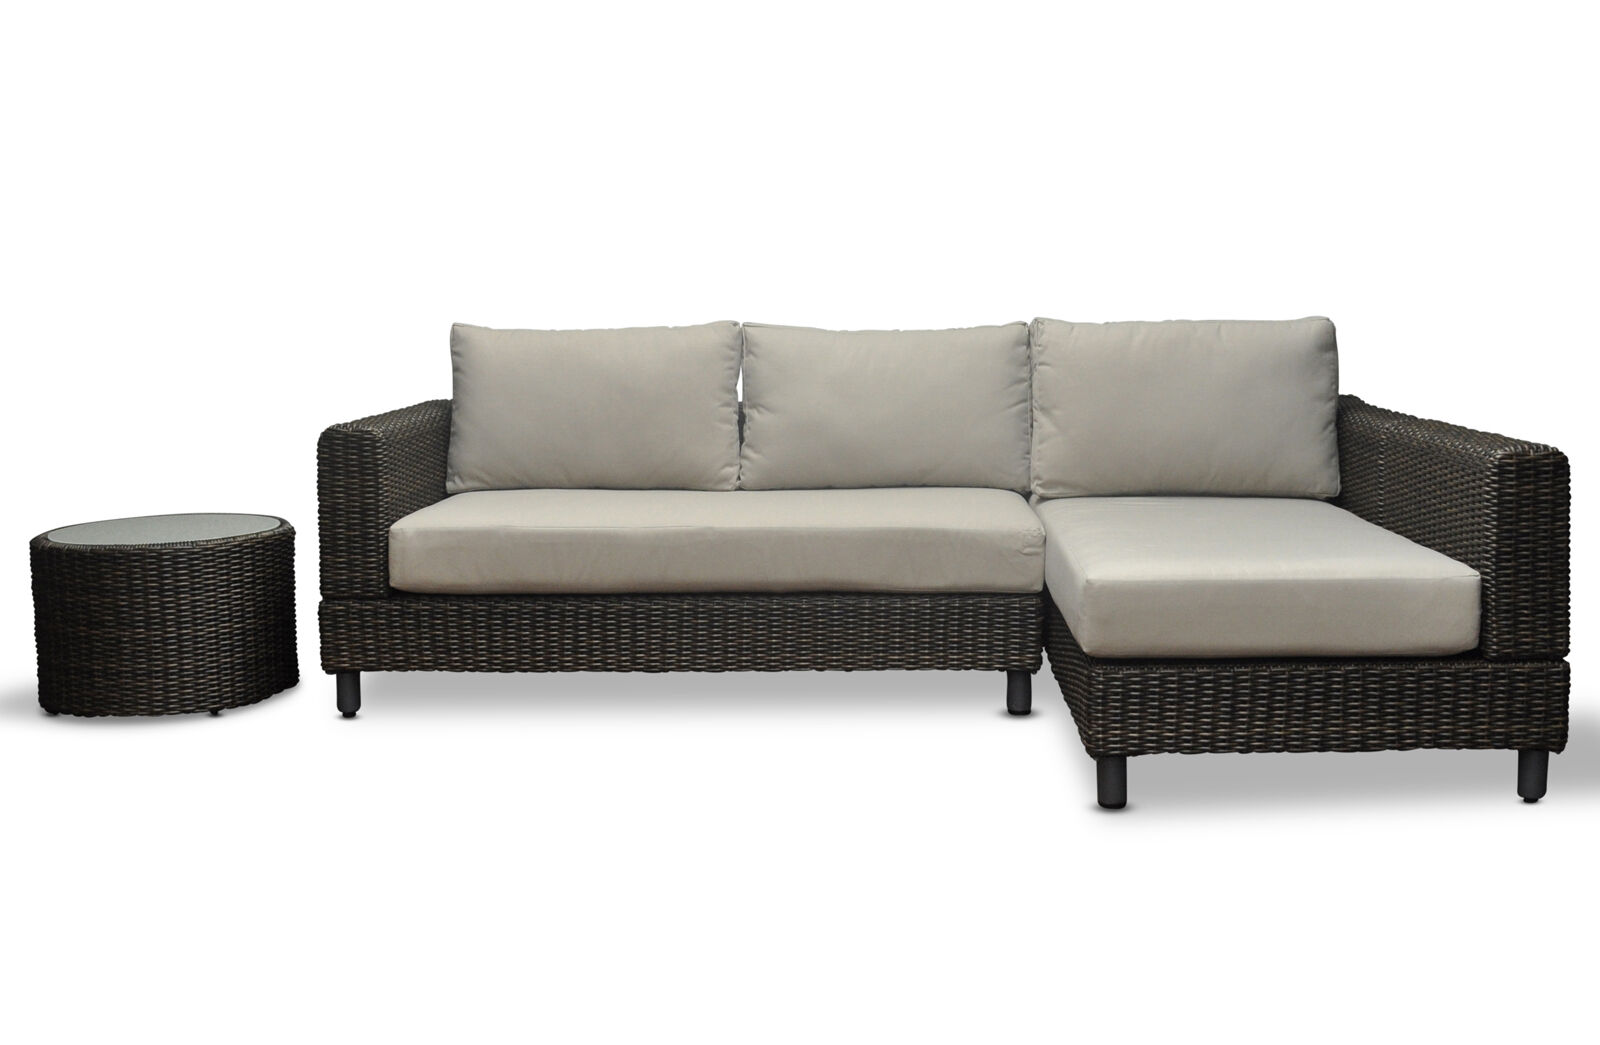 Modular wicker outdoor corner sofa chaise sun lounge for Chaise corner sofa